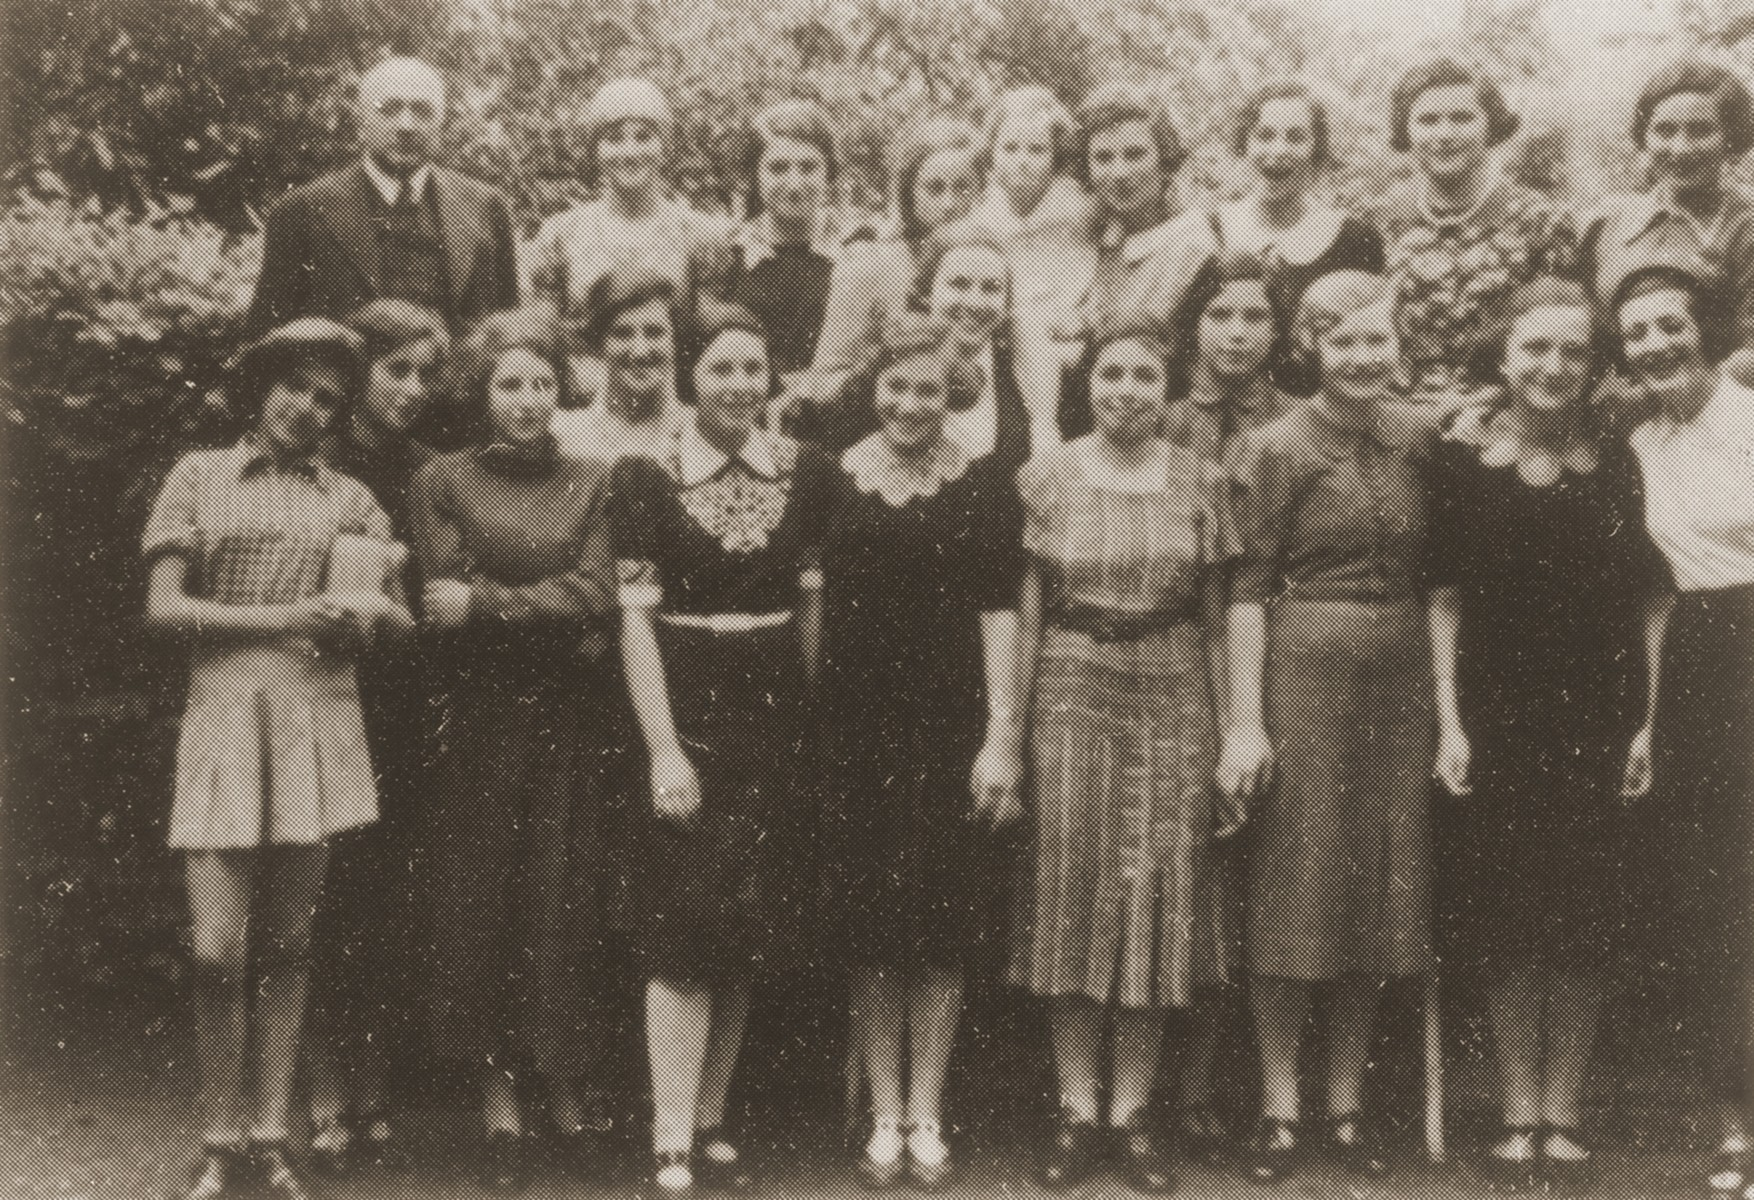 Group portrait of Jewish girls in the confirmation class of Rabbi Dr. Heilbronn in Fuerth, Germany.  [Standing in the front row right may be Ruth Heymann and Seidenberg.]